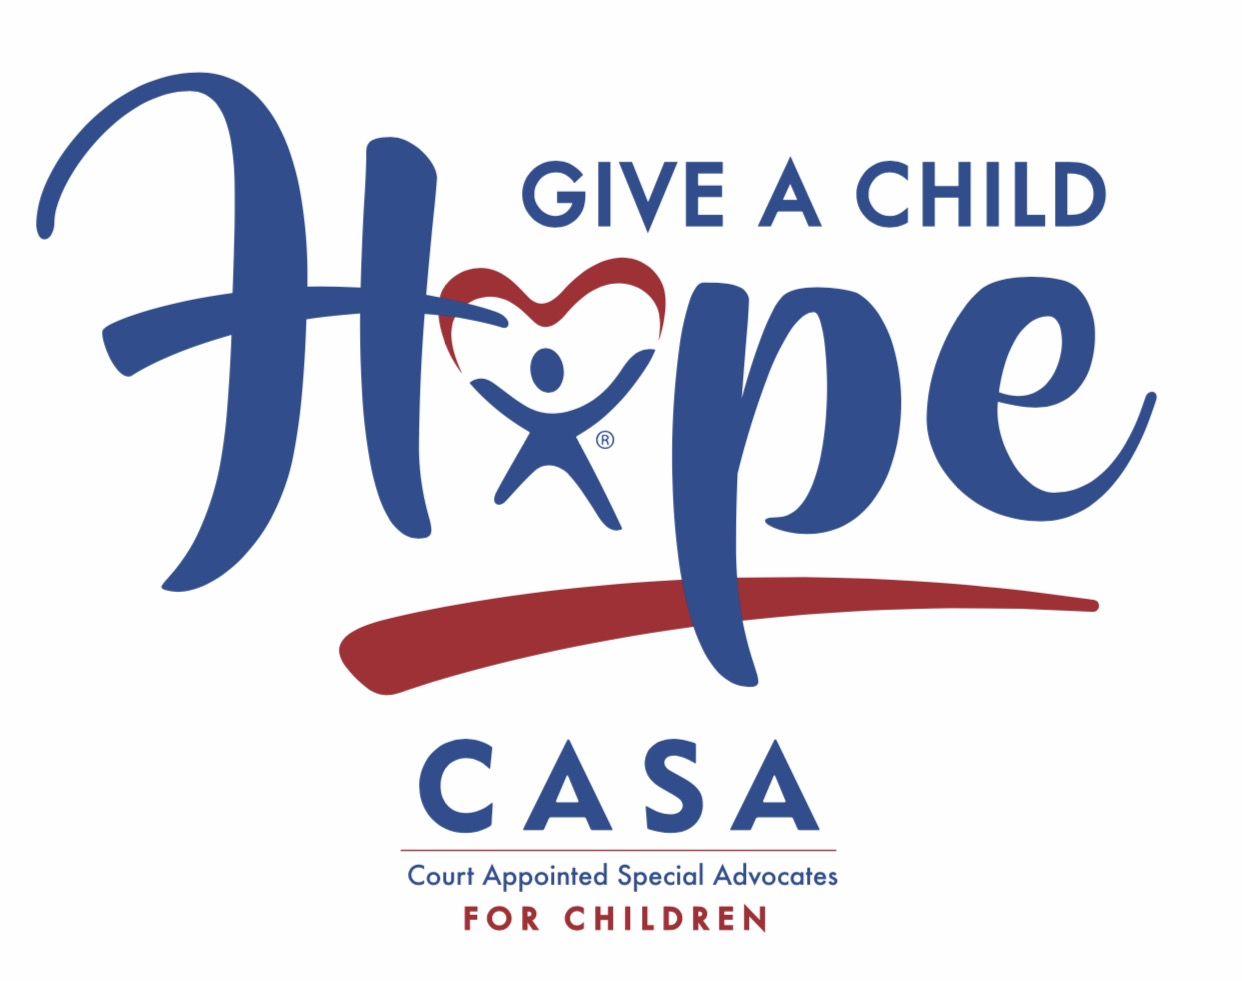 Give a child hope